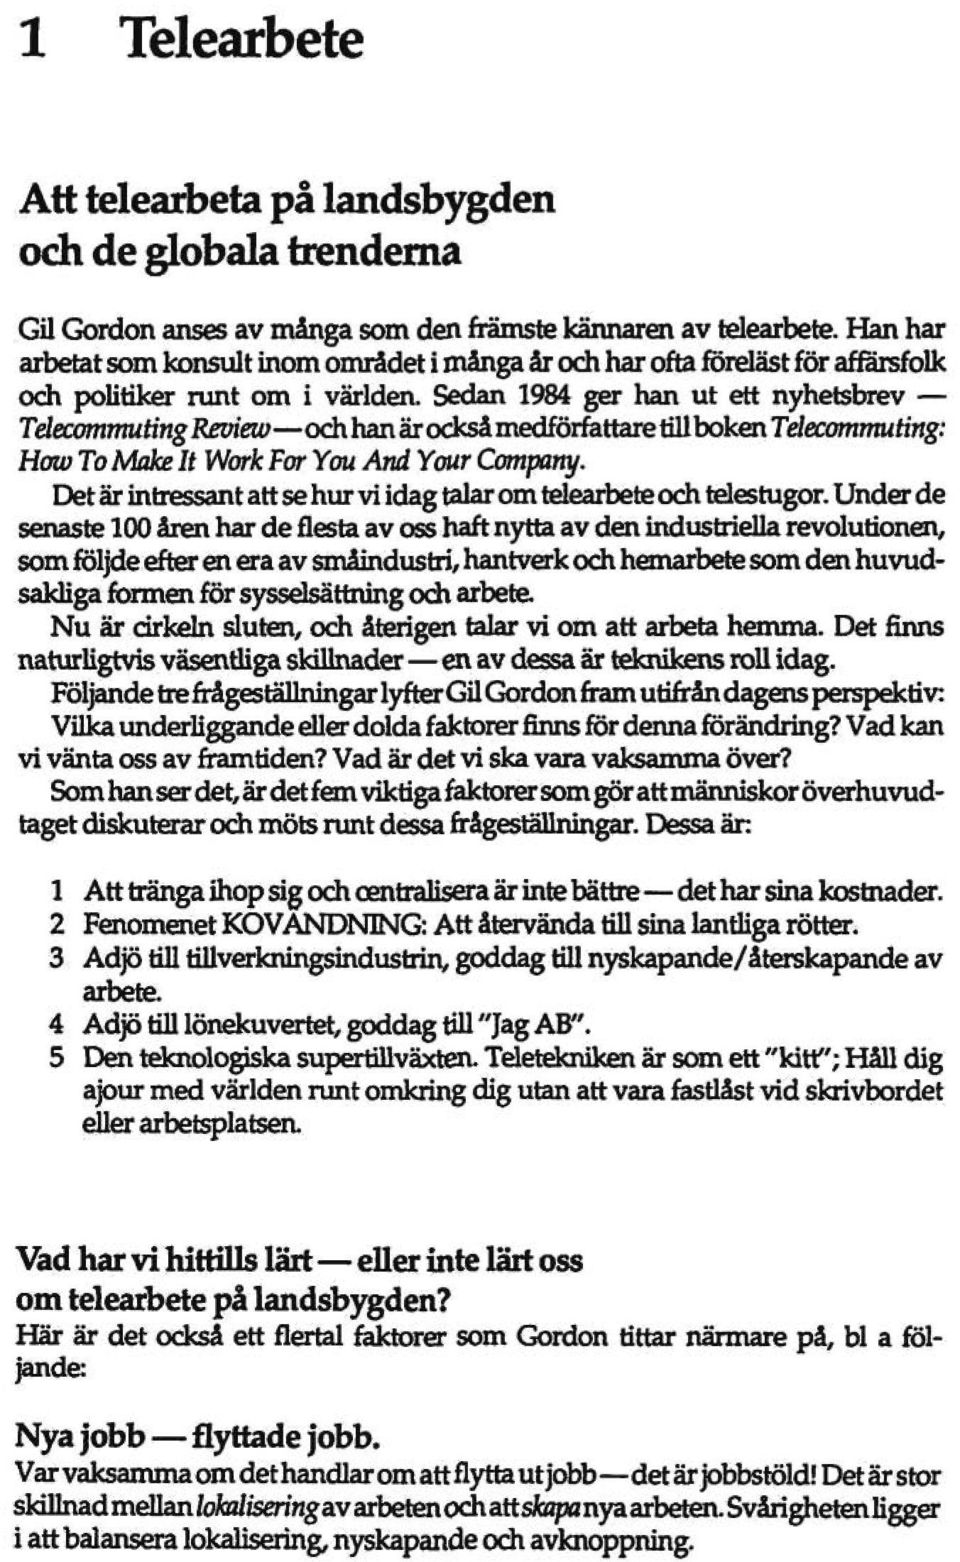 Sedan 1984 ger han ut ett nyhetsbrev Telecommuting Review och han är också medförfattare tül boken Telecommuting: Haw To Make It Work For You And Your Company.